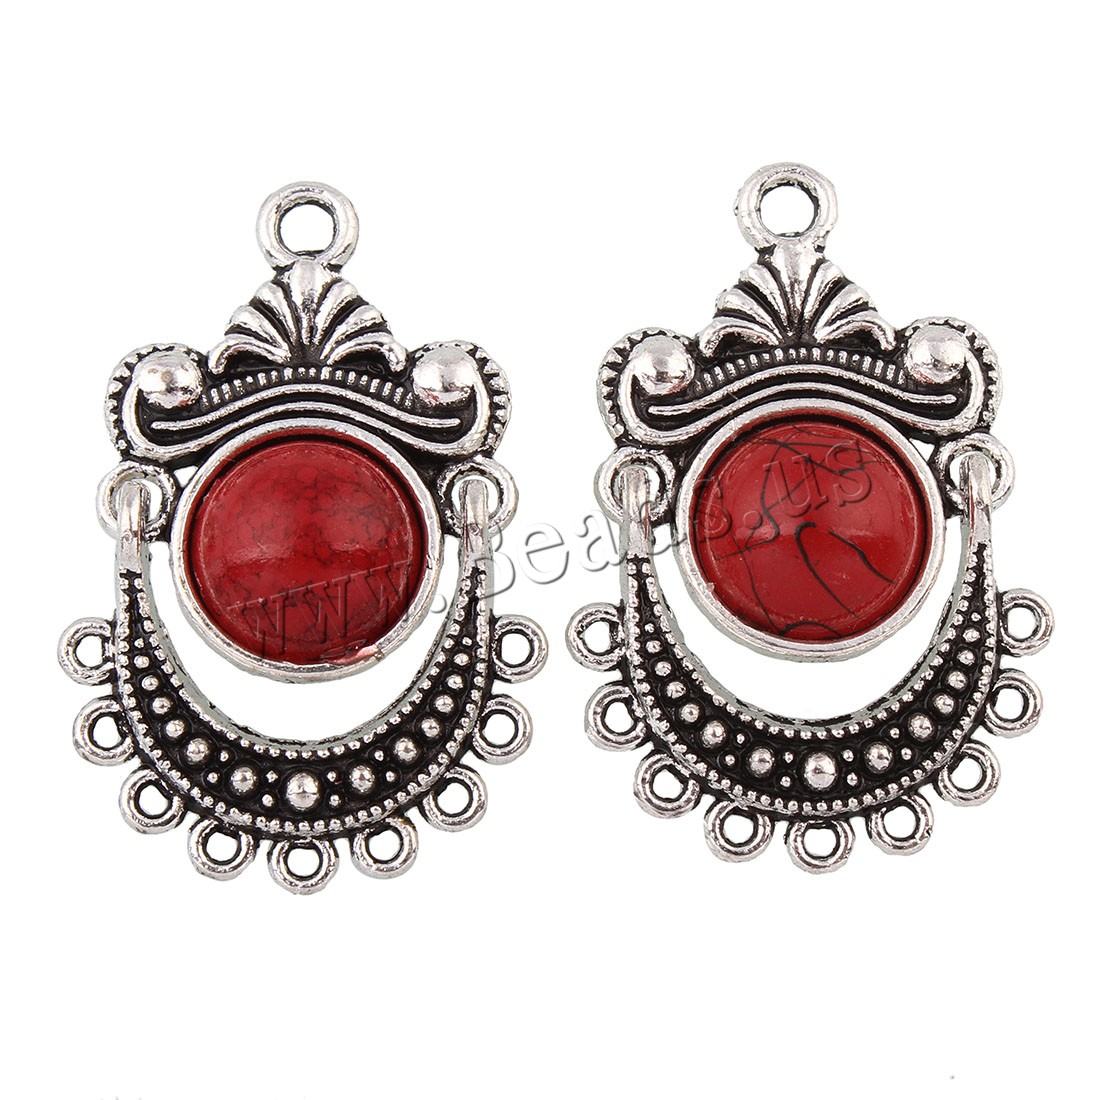 Buy Zinc Alloy Connector Turquoise antique silver color plated 1/9 loop lead & cadmium free 21.50x32x5mm Hole:Approx 1.5mm 20PCs/Bag Sold Bag